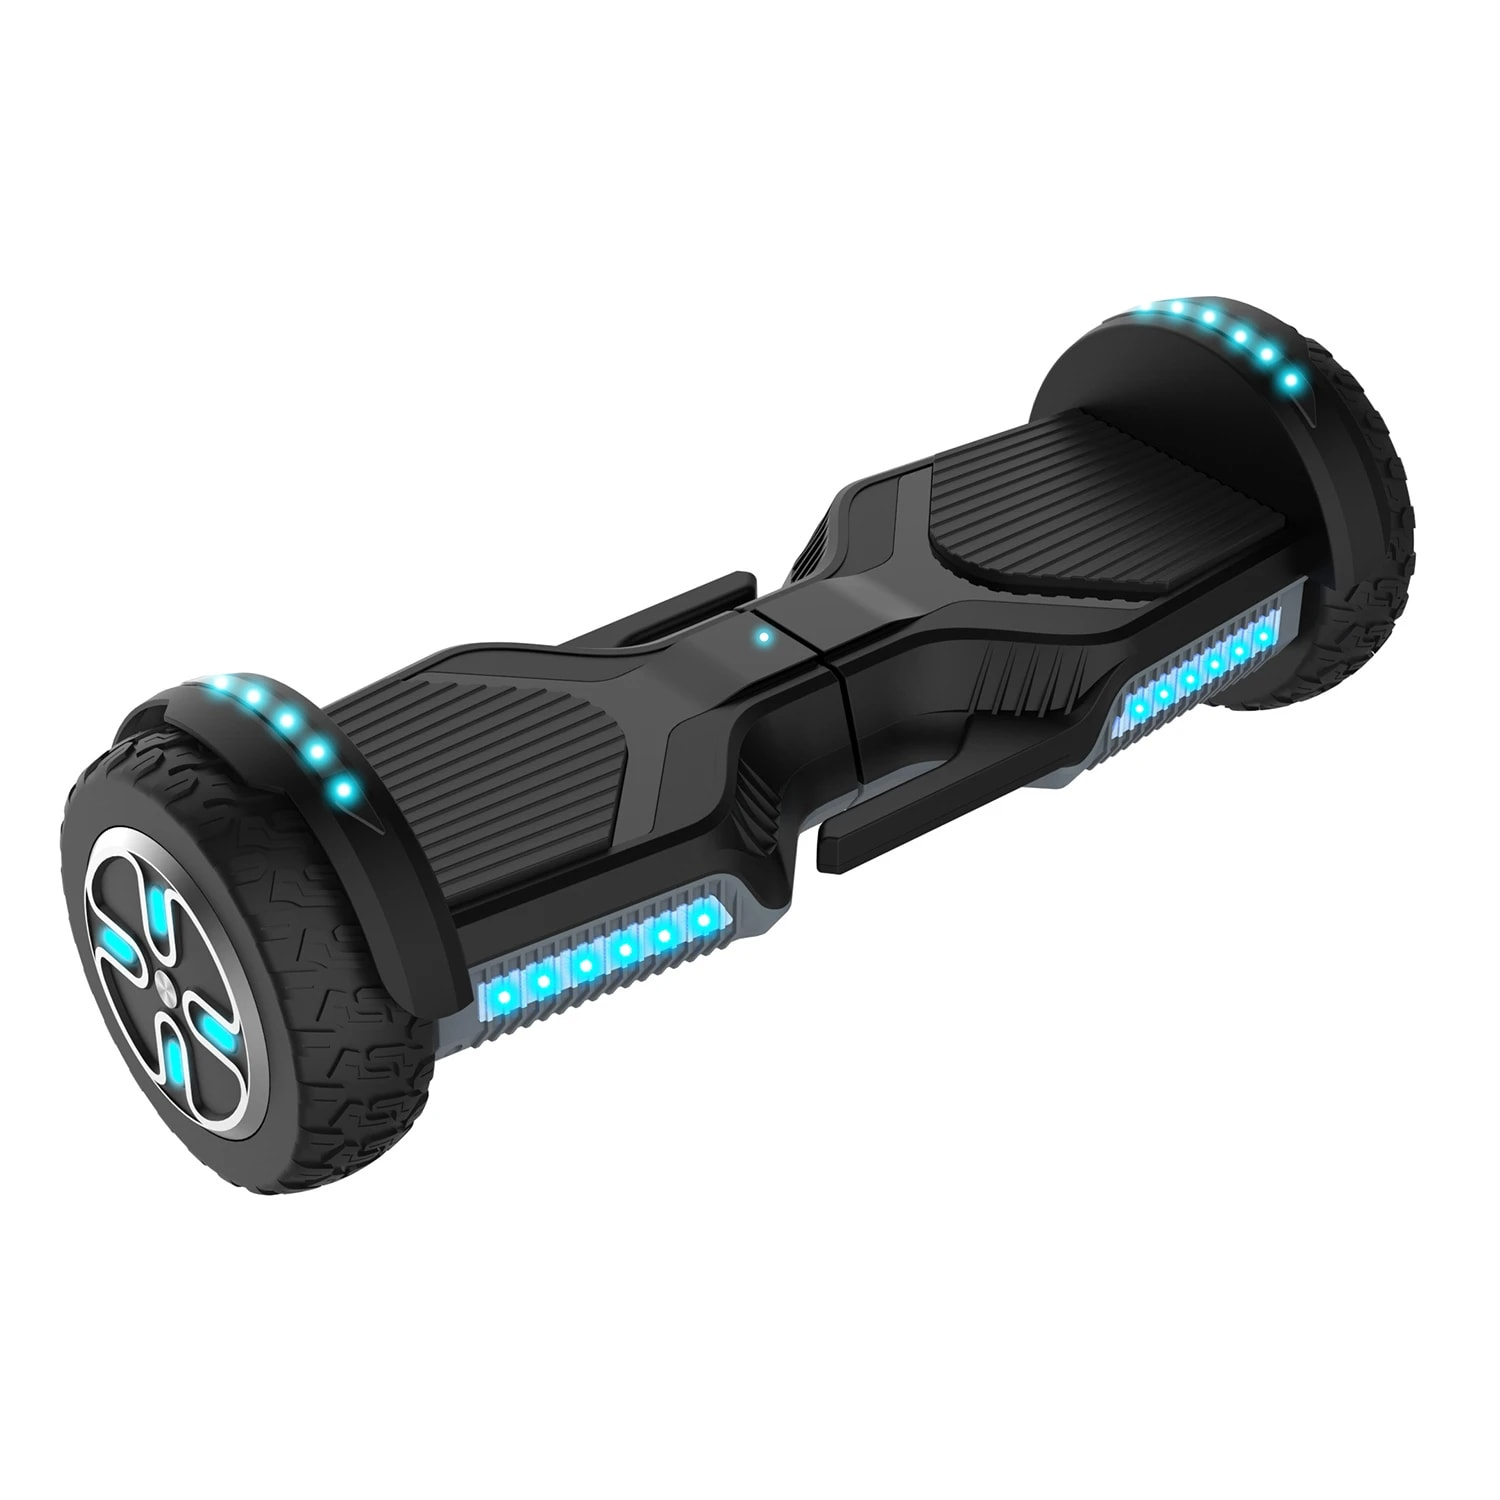 gotrax hoverfly e3 off road hoverboard review